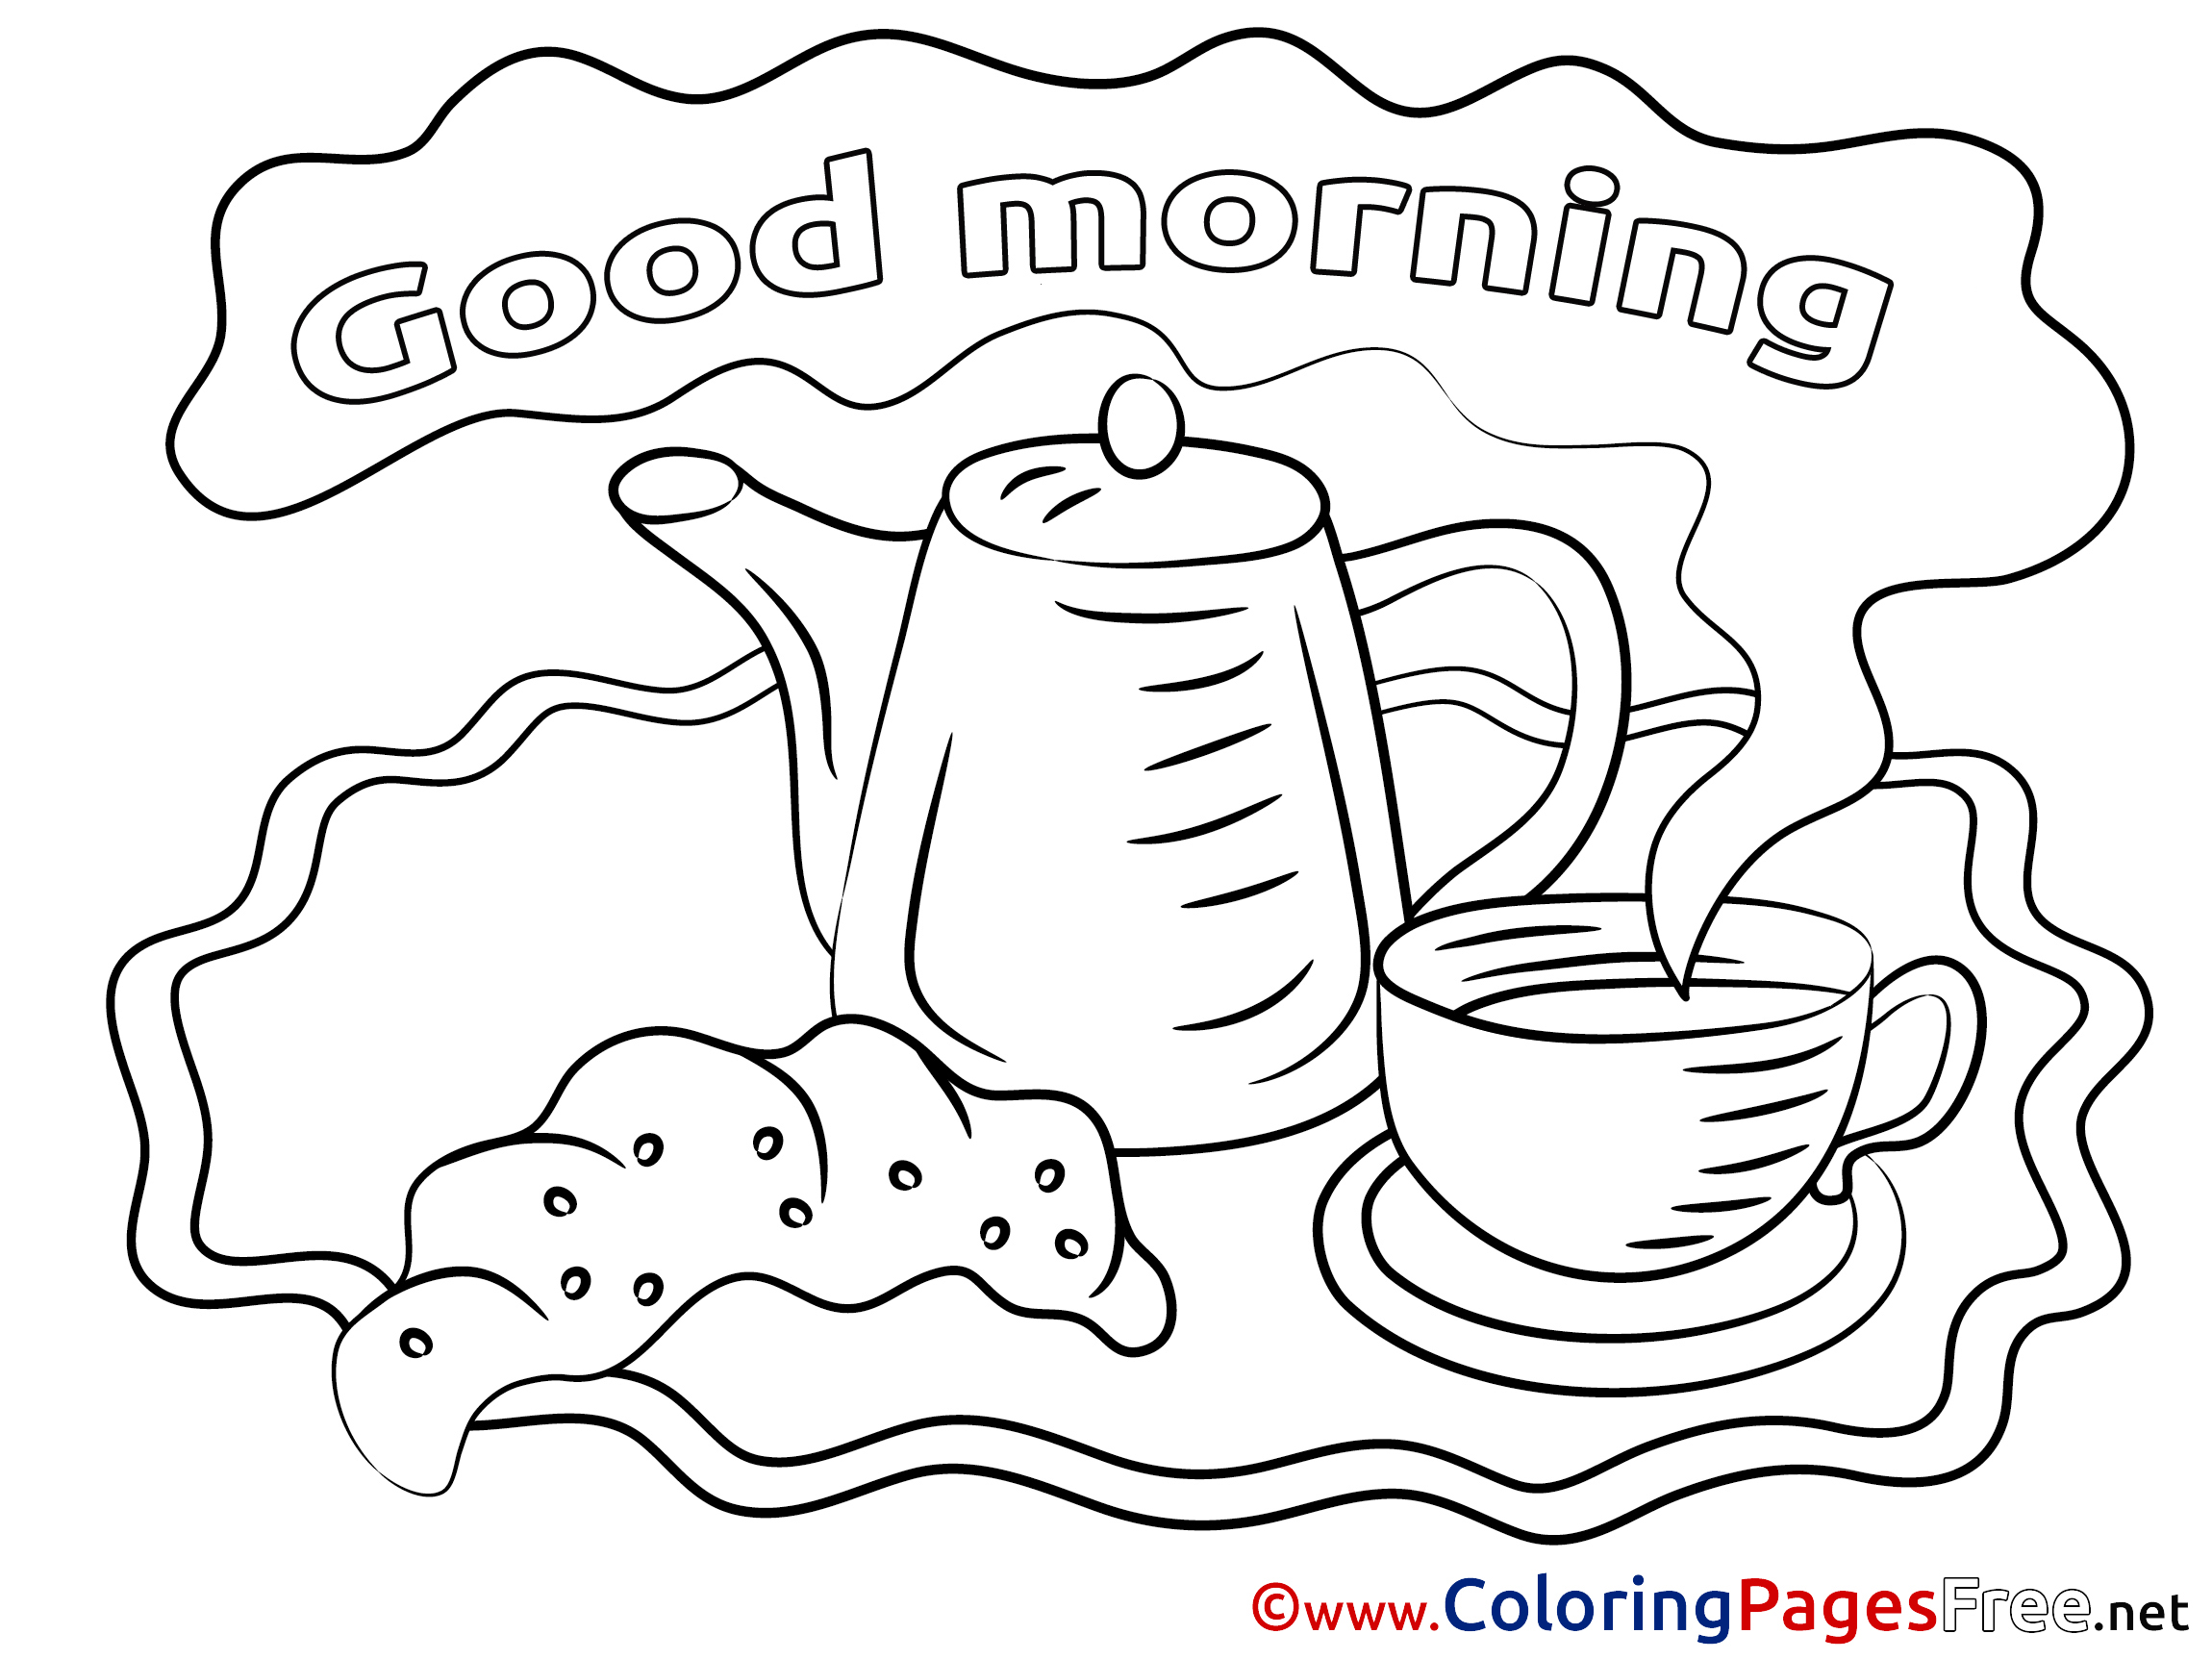 Good Morning Coloring Sheet